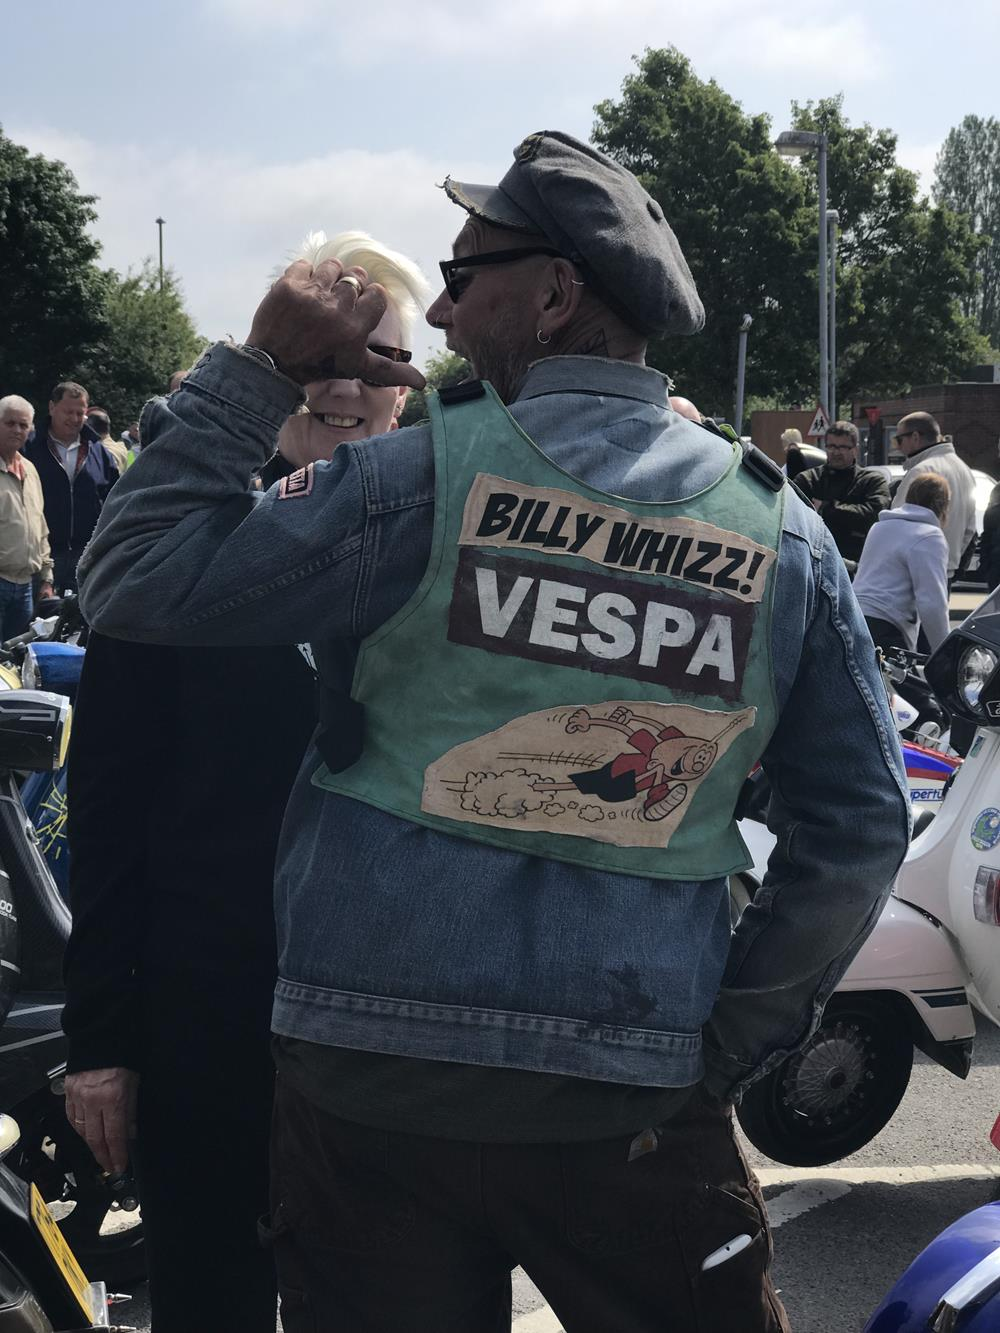 Snowy showing off his Billy Whizz vest with Vespa logo